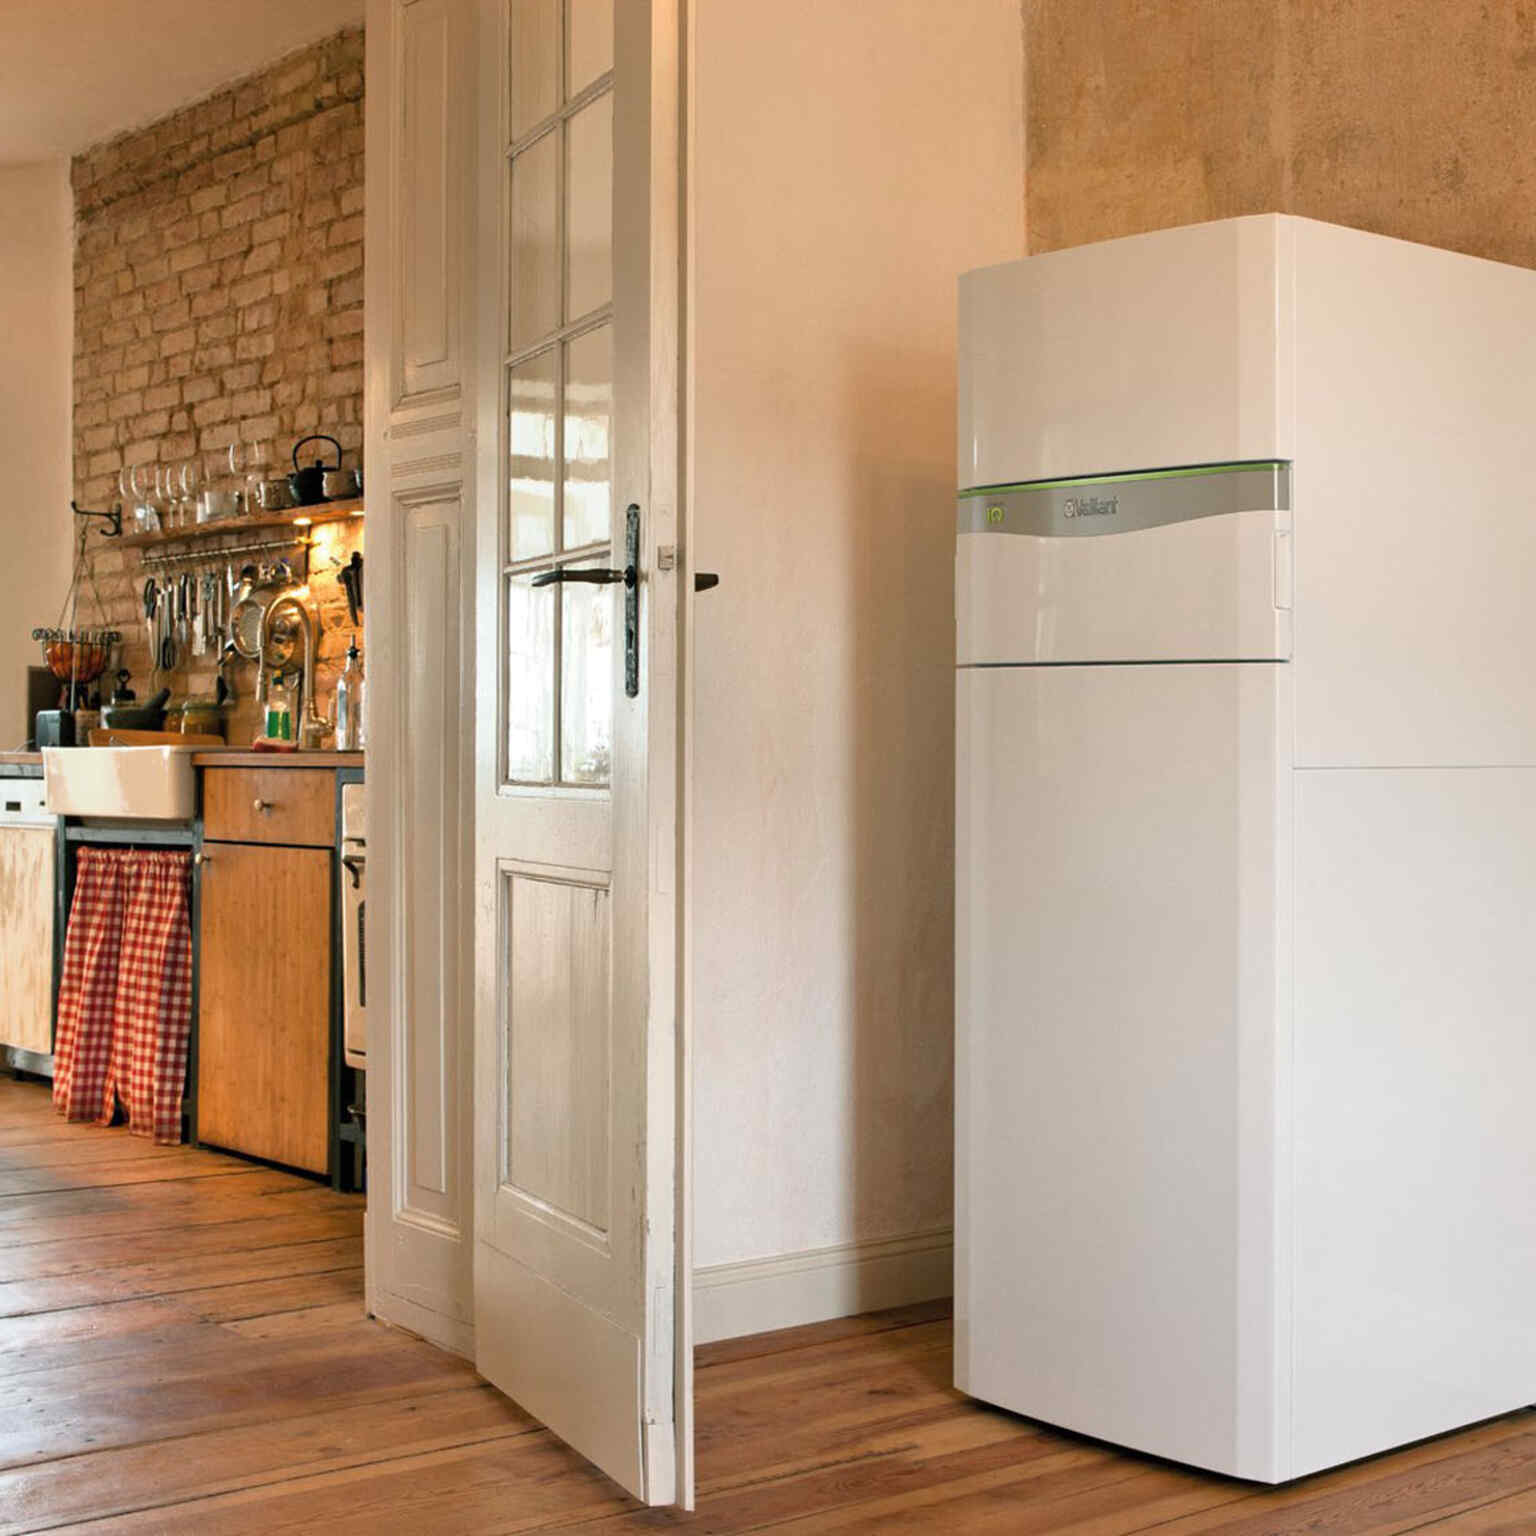 Vaillant flexoCompact, (c) Vaillant